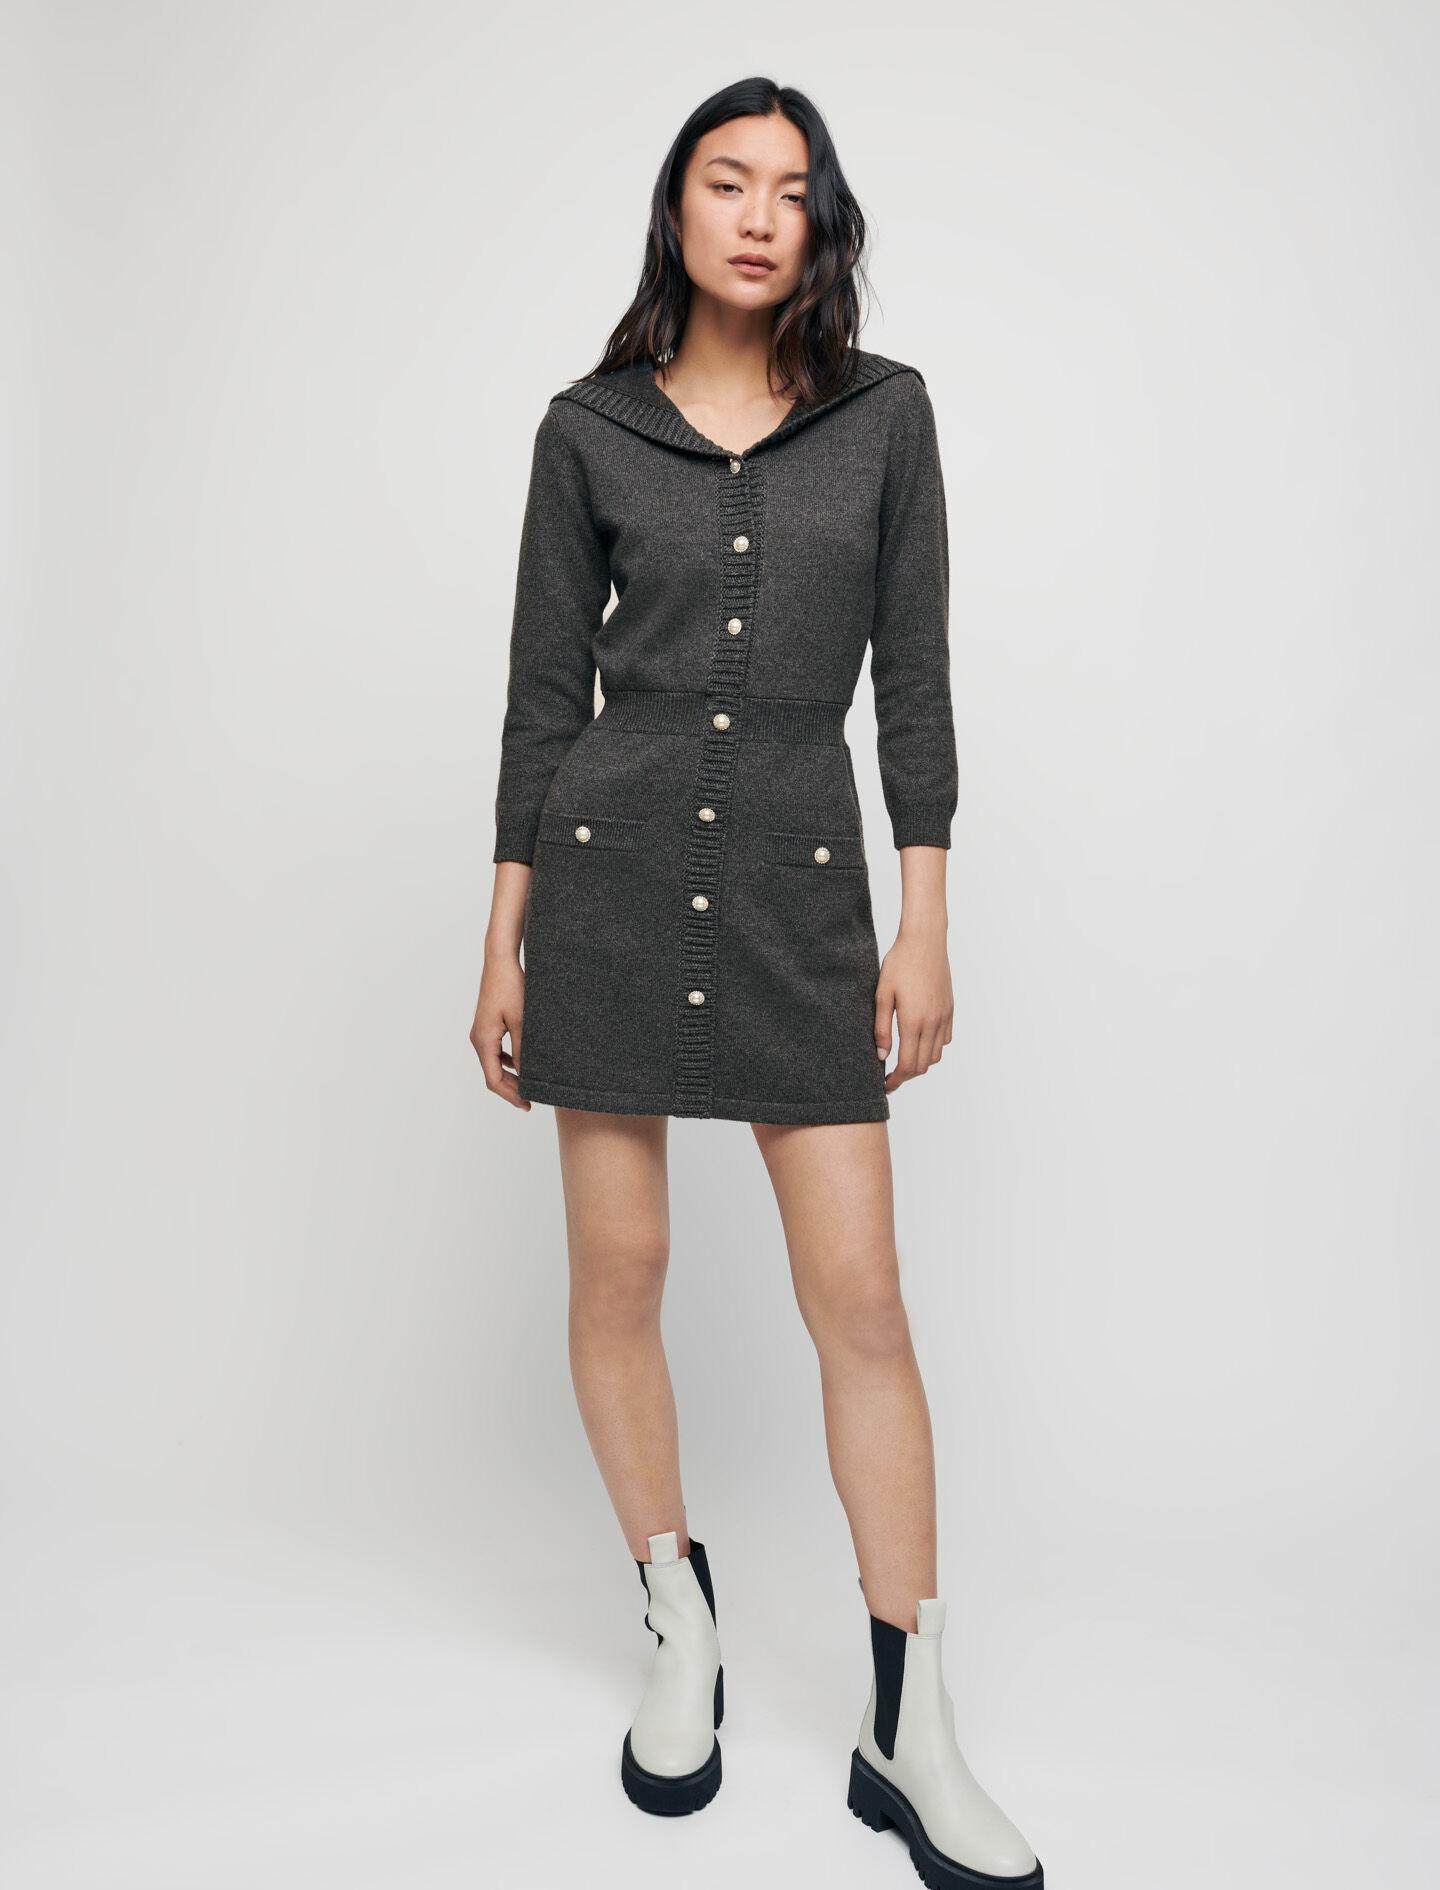 WOOL AND COTTON DRESS WITH SAILOR COLLAR